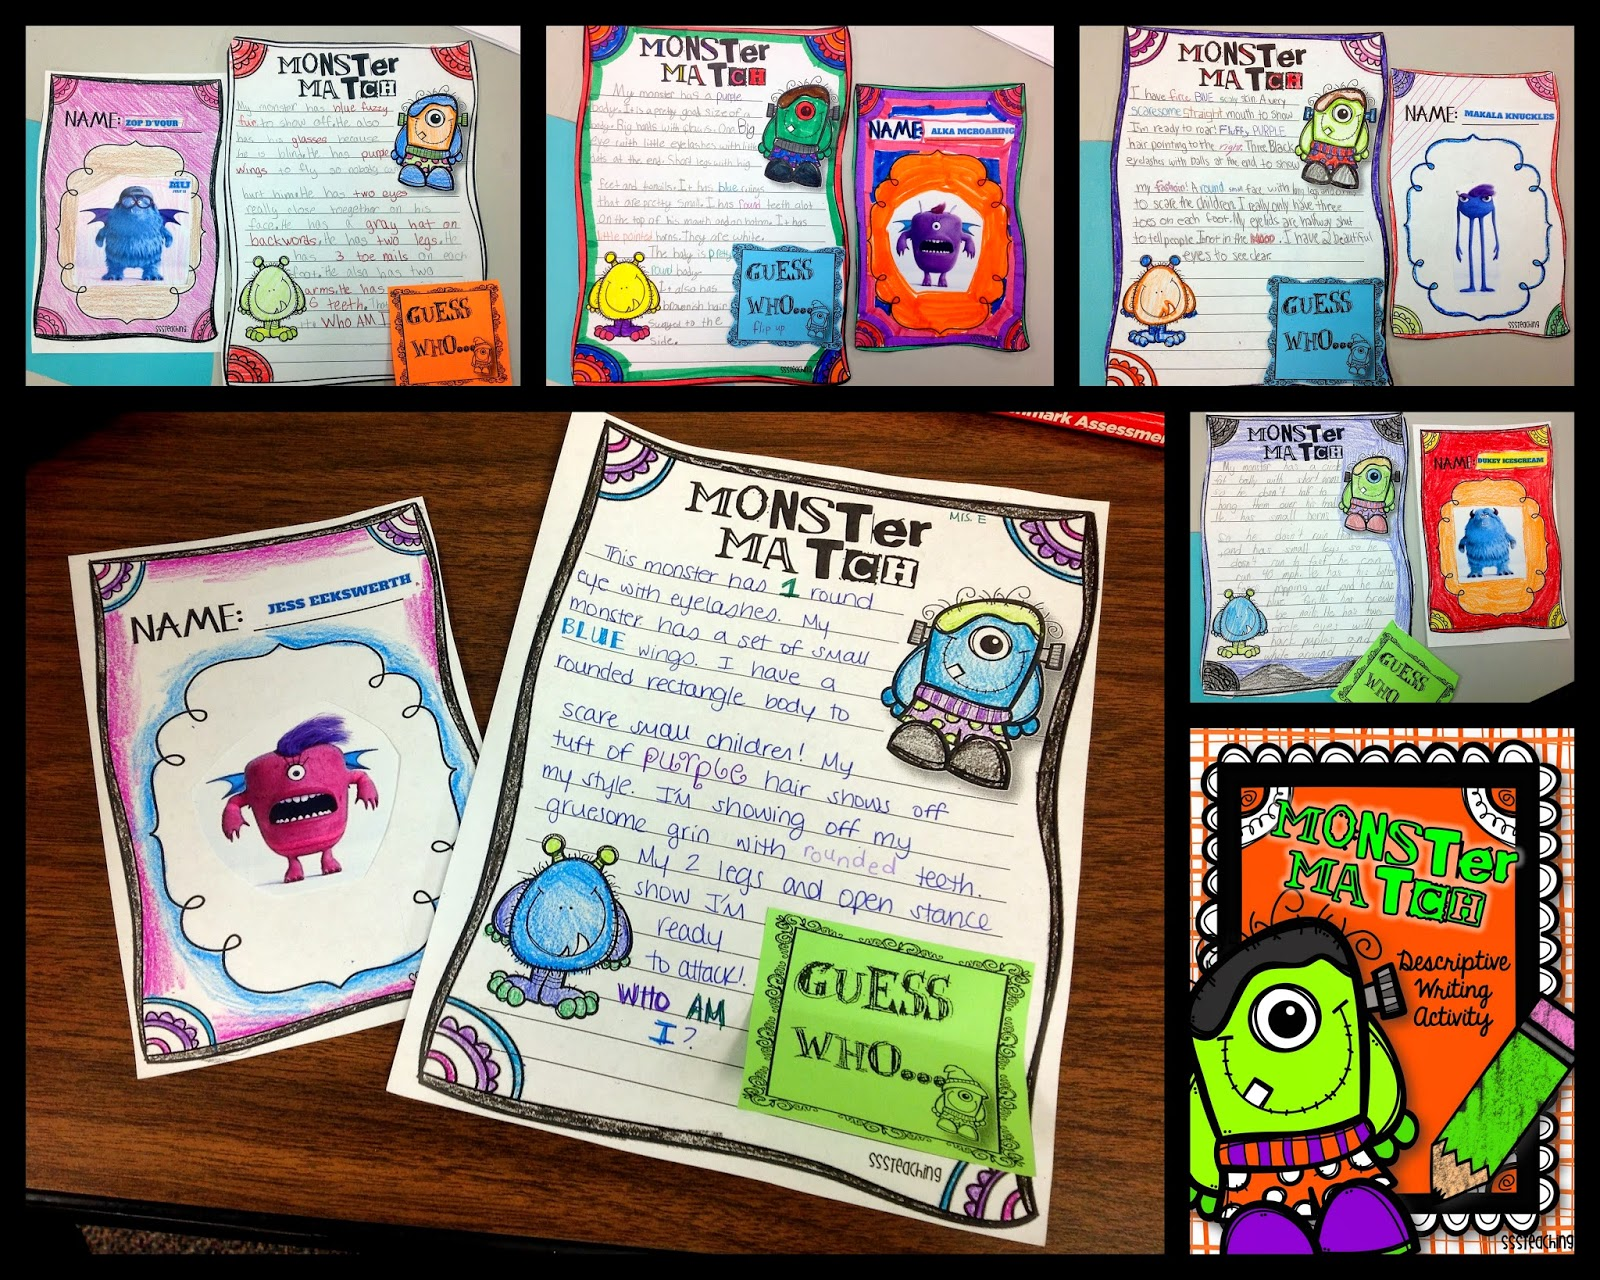 descriptive writing monster match sssteaching i love how they turned out so creative and the writing shows how much we have grown in the past few weeks learning how details can add so much to our